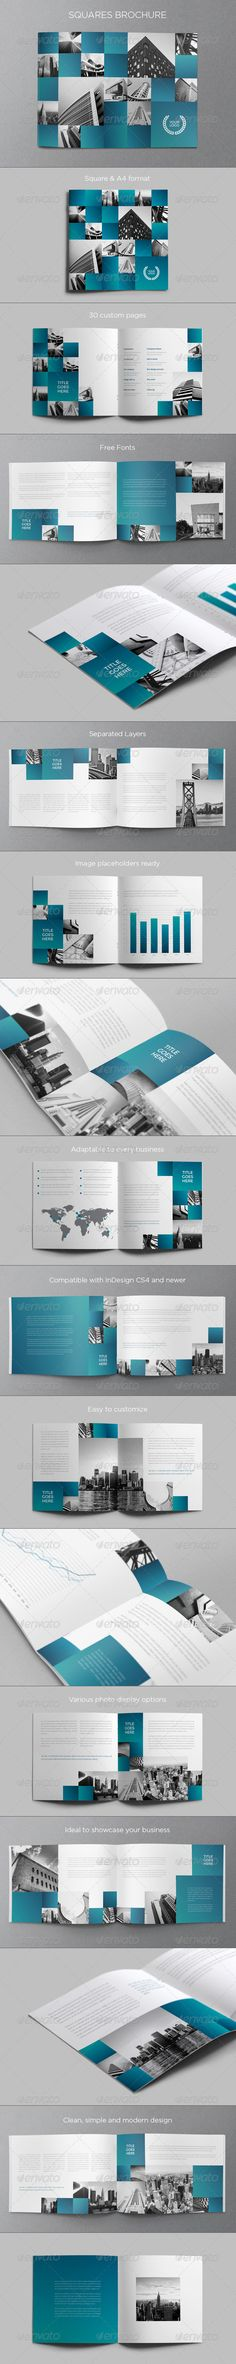 Architecture Squares Brochure #GraphicRiver SQUARES BROCHURE This brochure is an ideal way to showcase your properties.